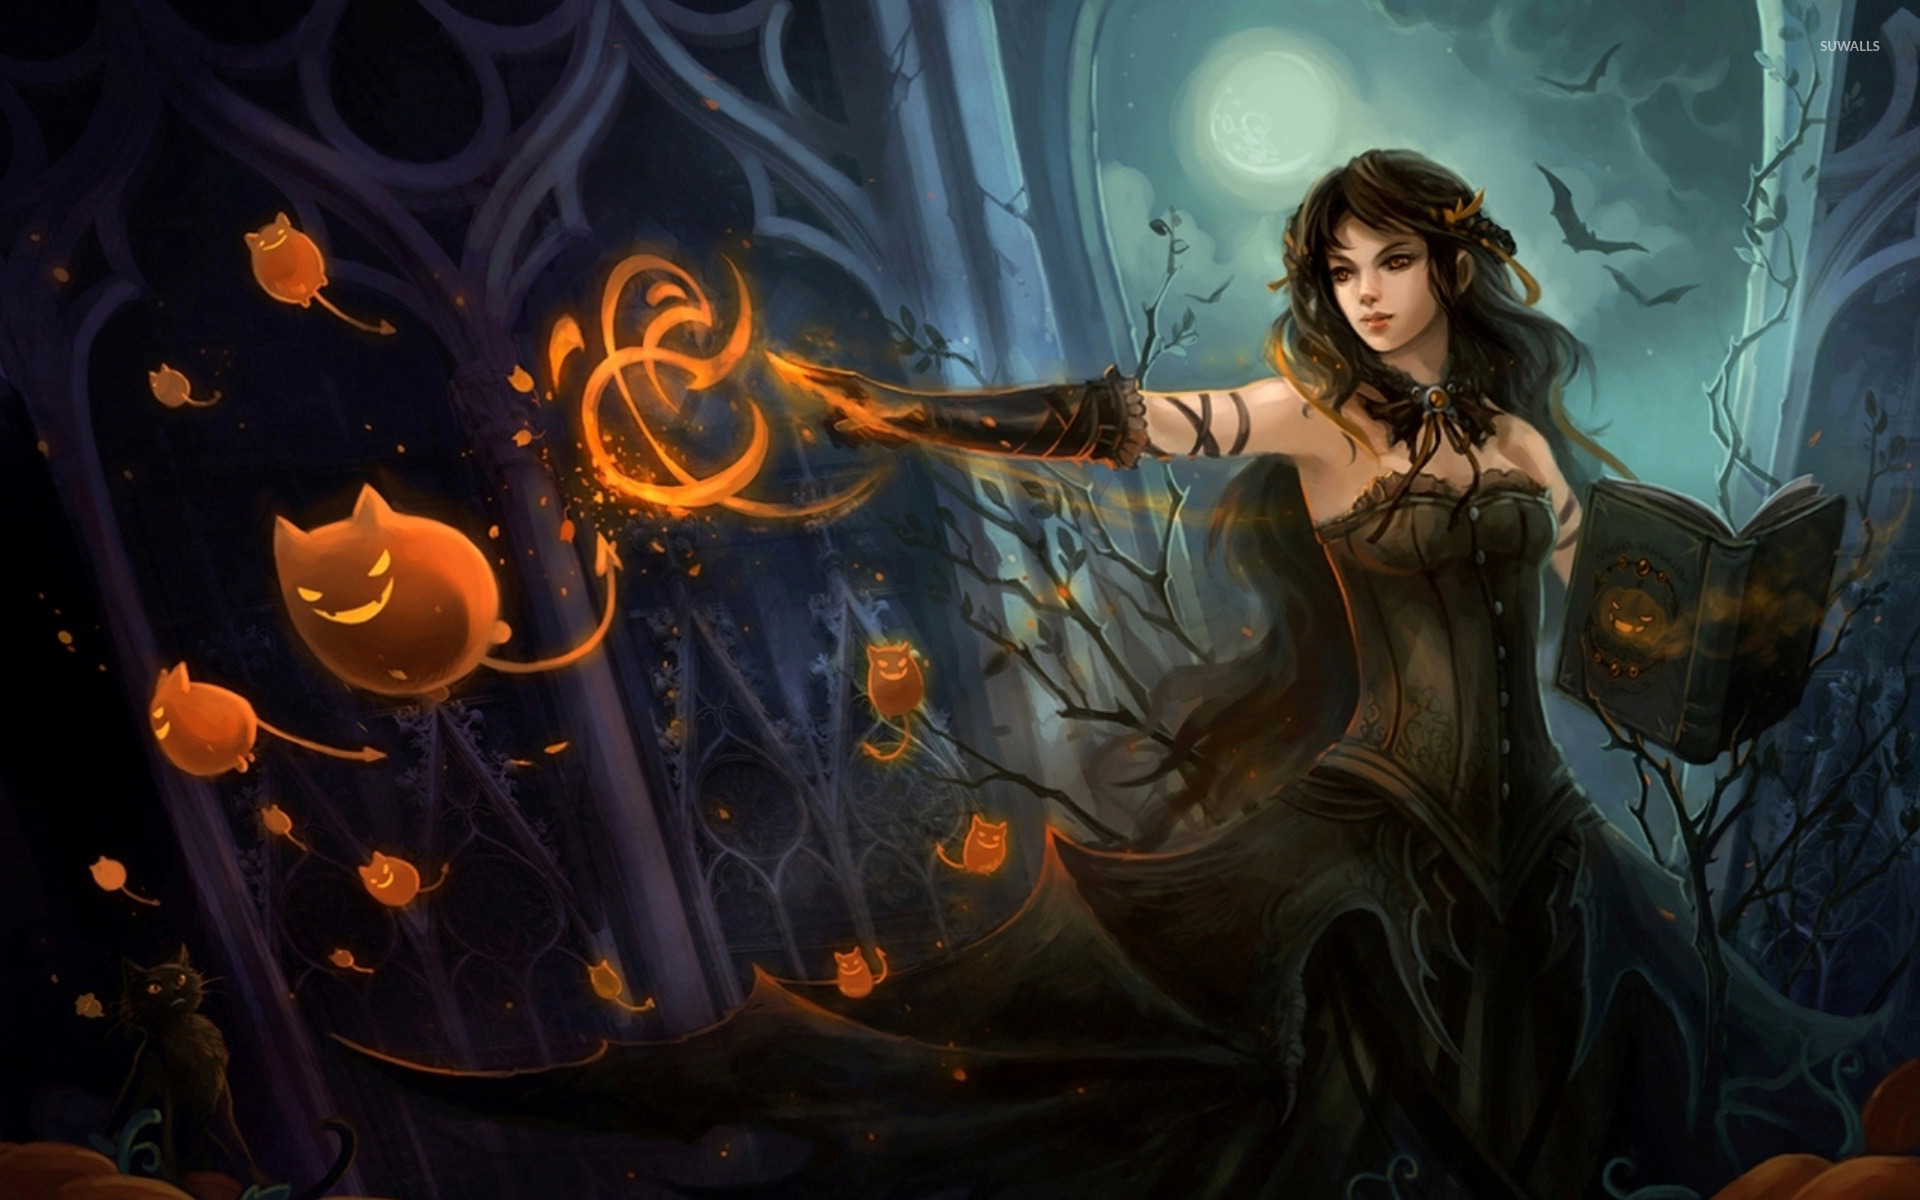 Witch wallpaper   Fantasy wallpapers   11747 1920x1200